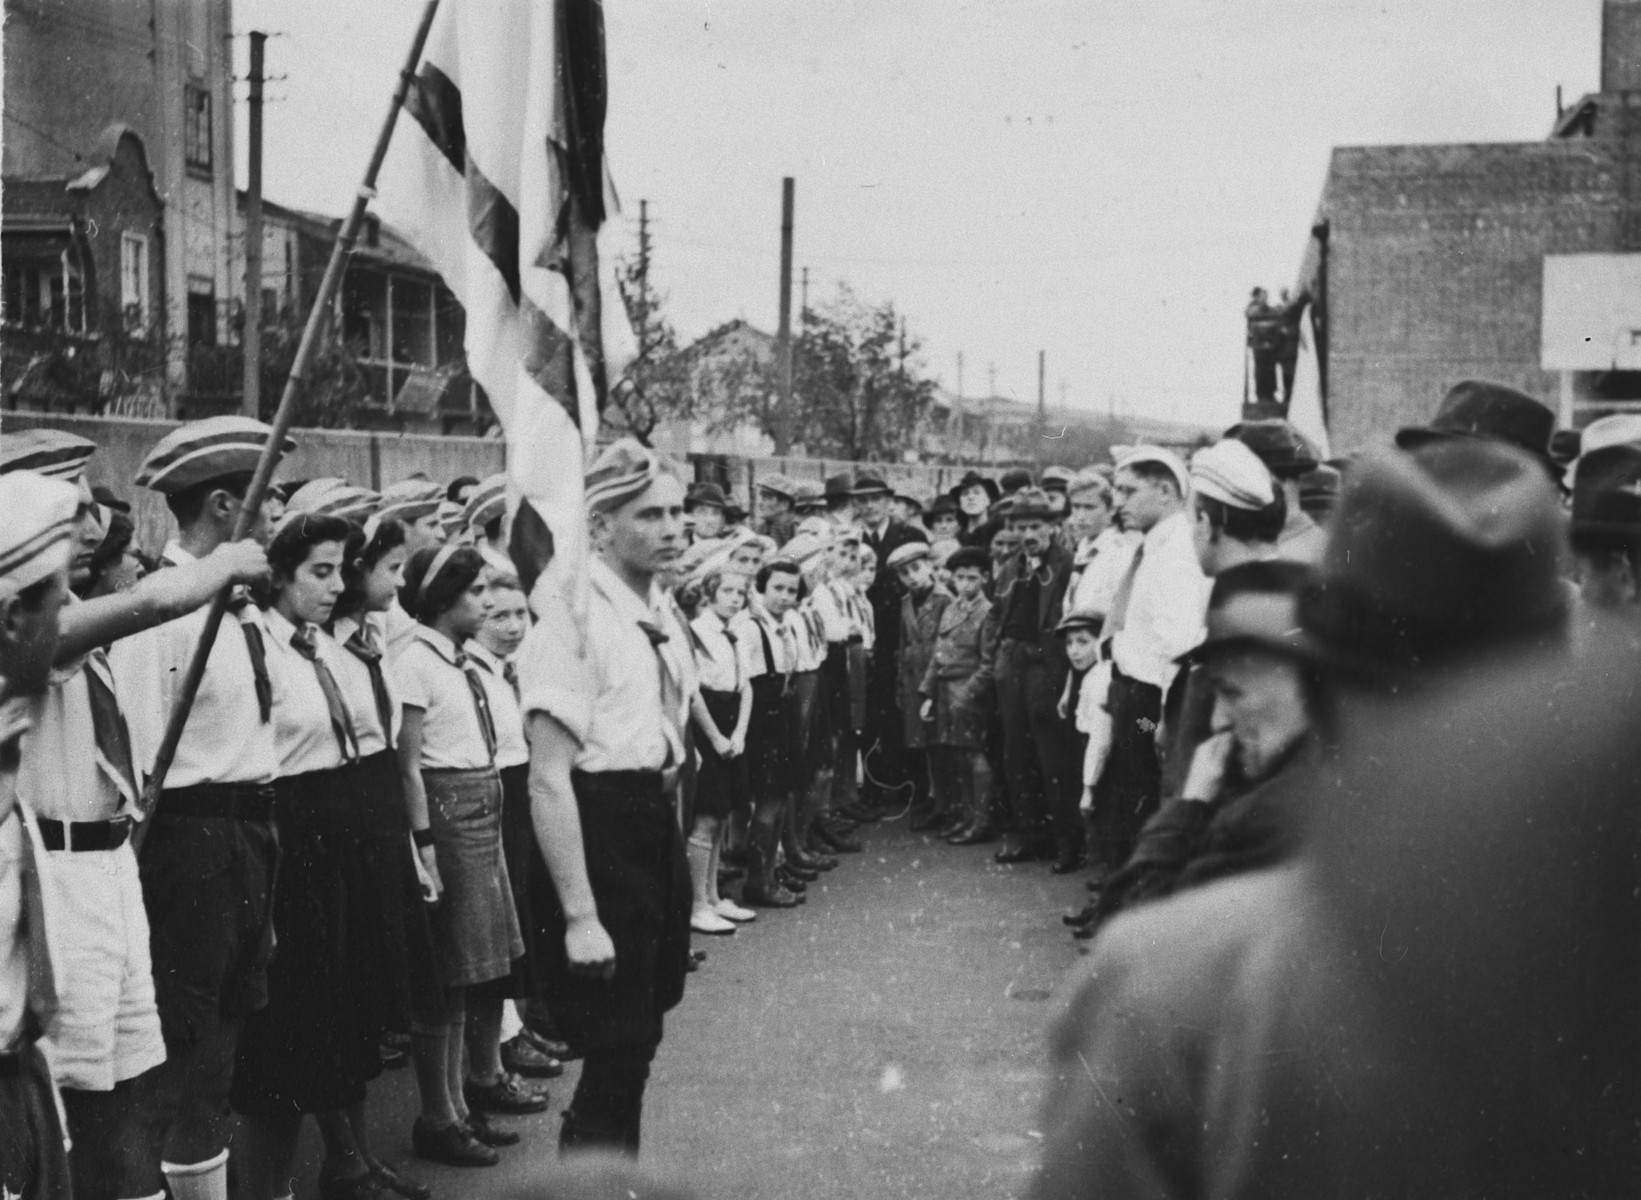 Zionist youth in Shanghai gather in formation with a flag.